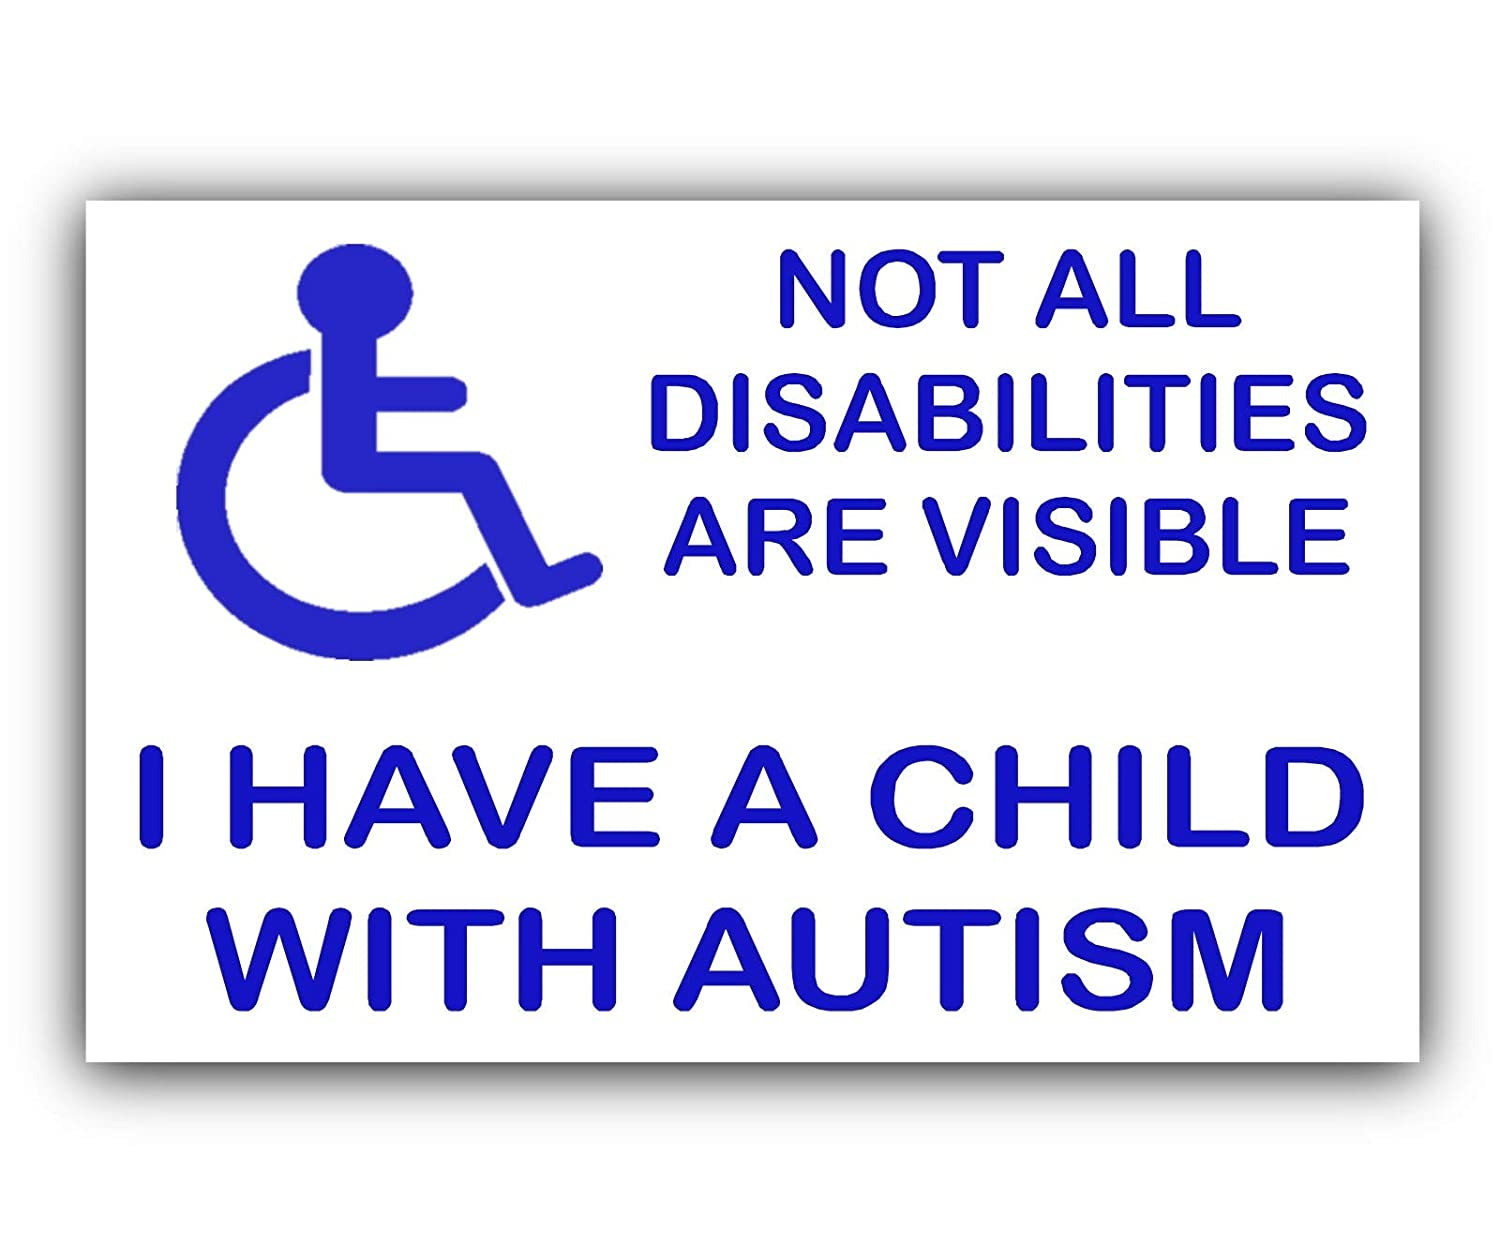 Platinum Place 1 x Child With Autism Disabled Sticker-Blue onto White-External Car, Van, Vehicle Vinyl Sign, Disability, Not, All, Visible, Vehicle, Home, Door, Care PPCHILDAUTISM